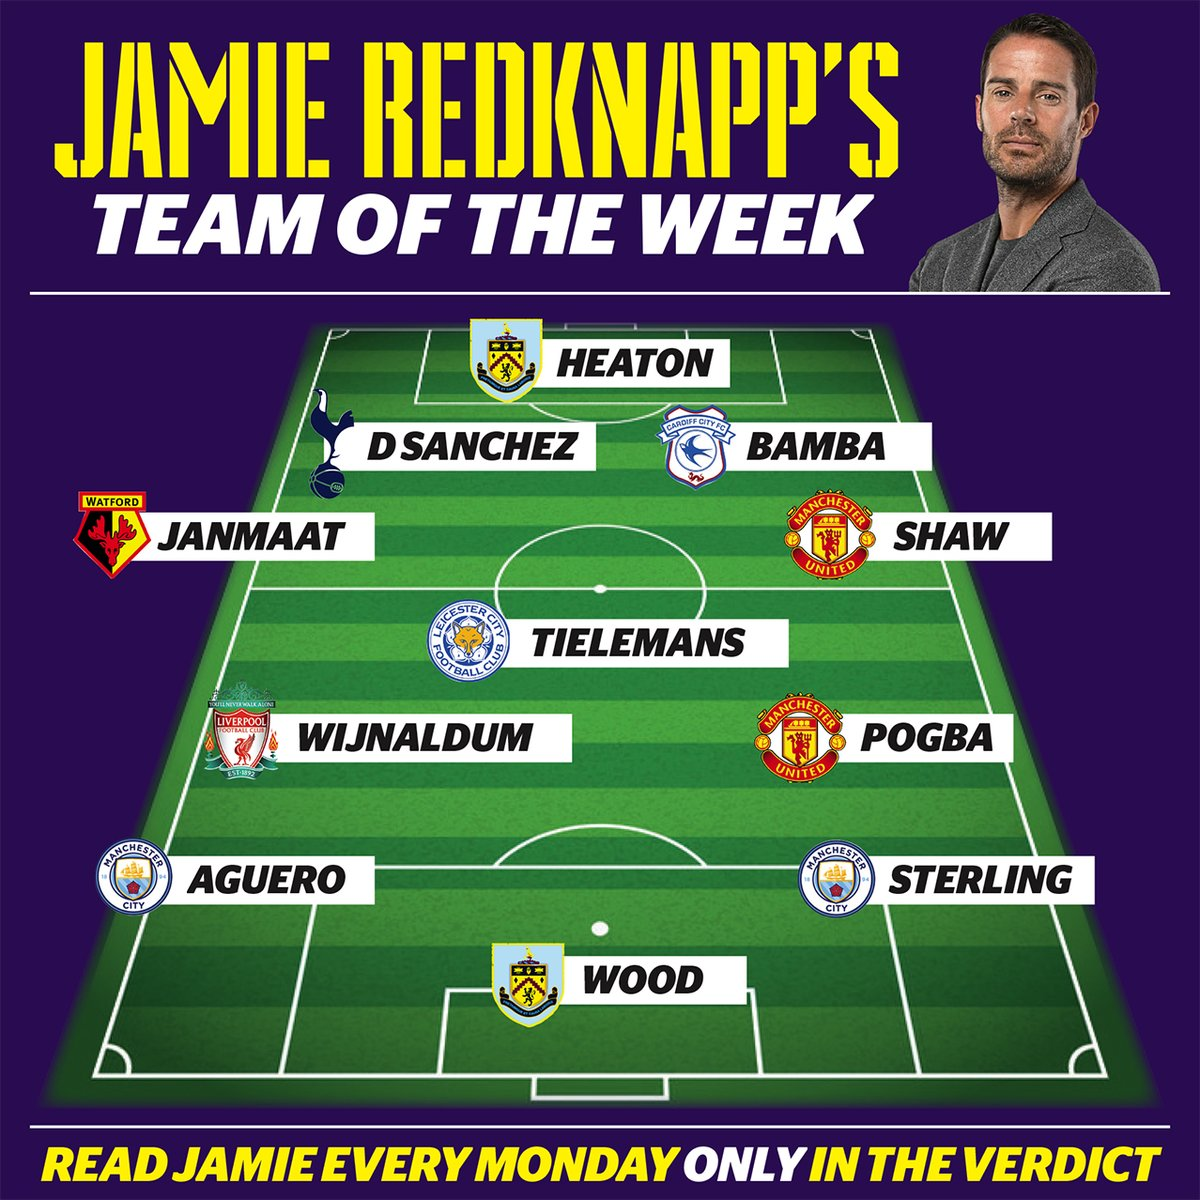 Wijnaldum in Team of the Week